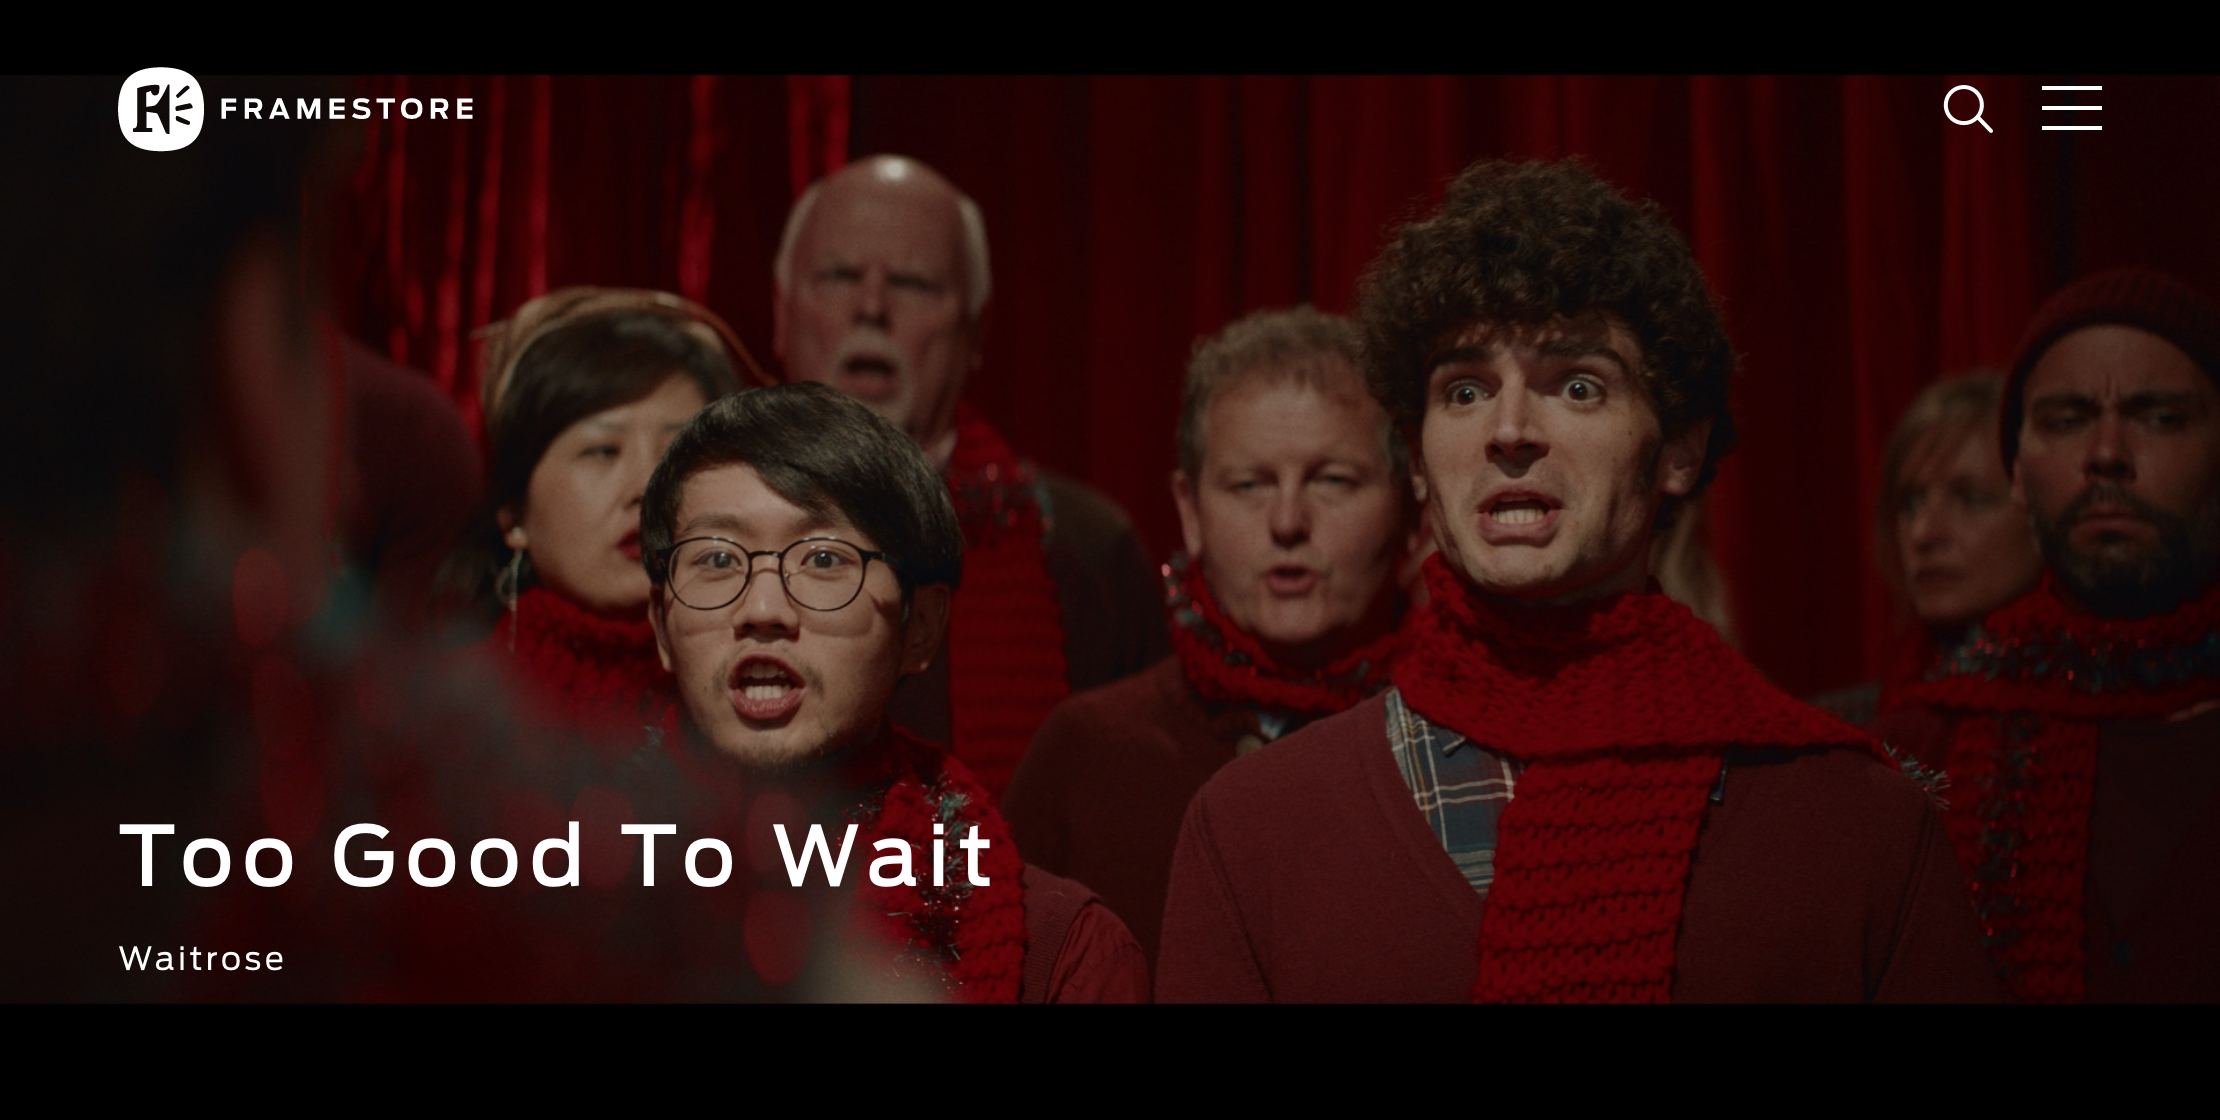 Click the image above to watch the ads on Framestore's site